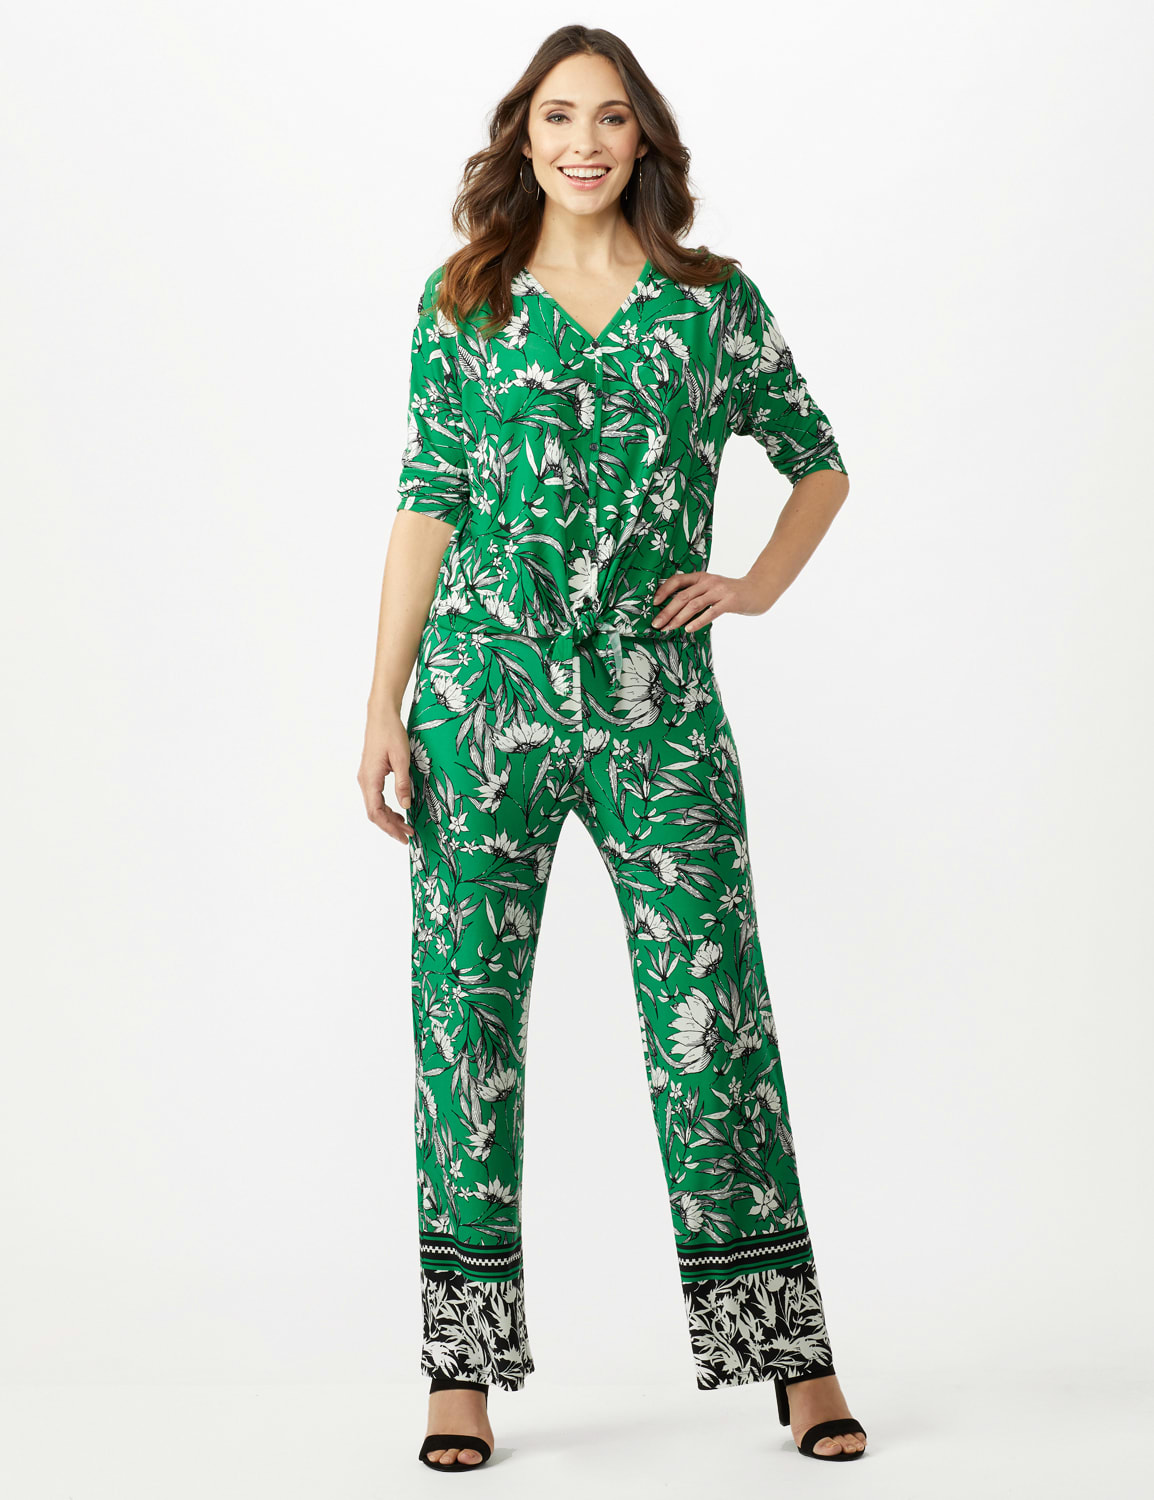 Knit Pull on Print Pant - Green/Black/Ivory - Front